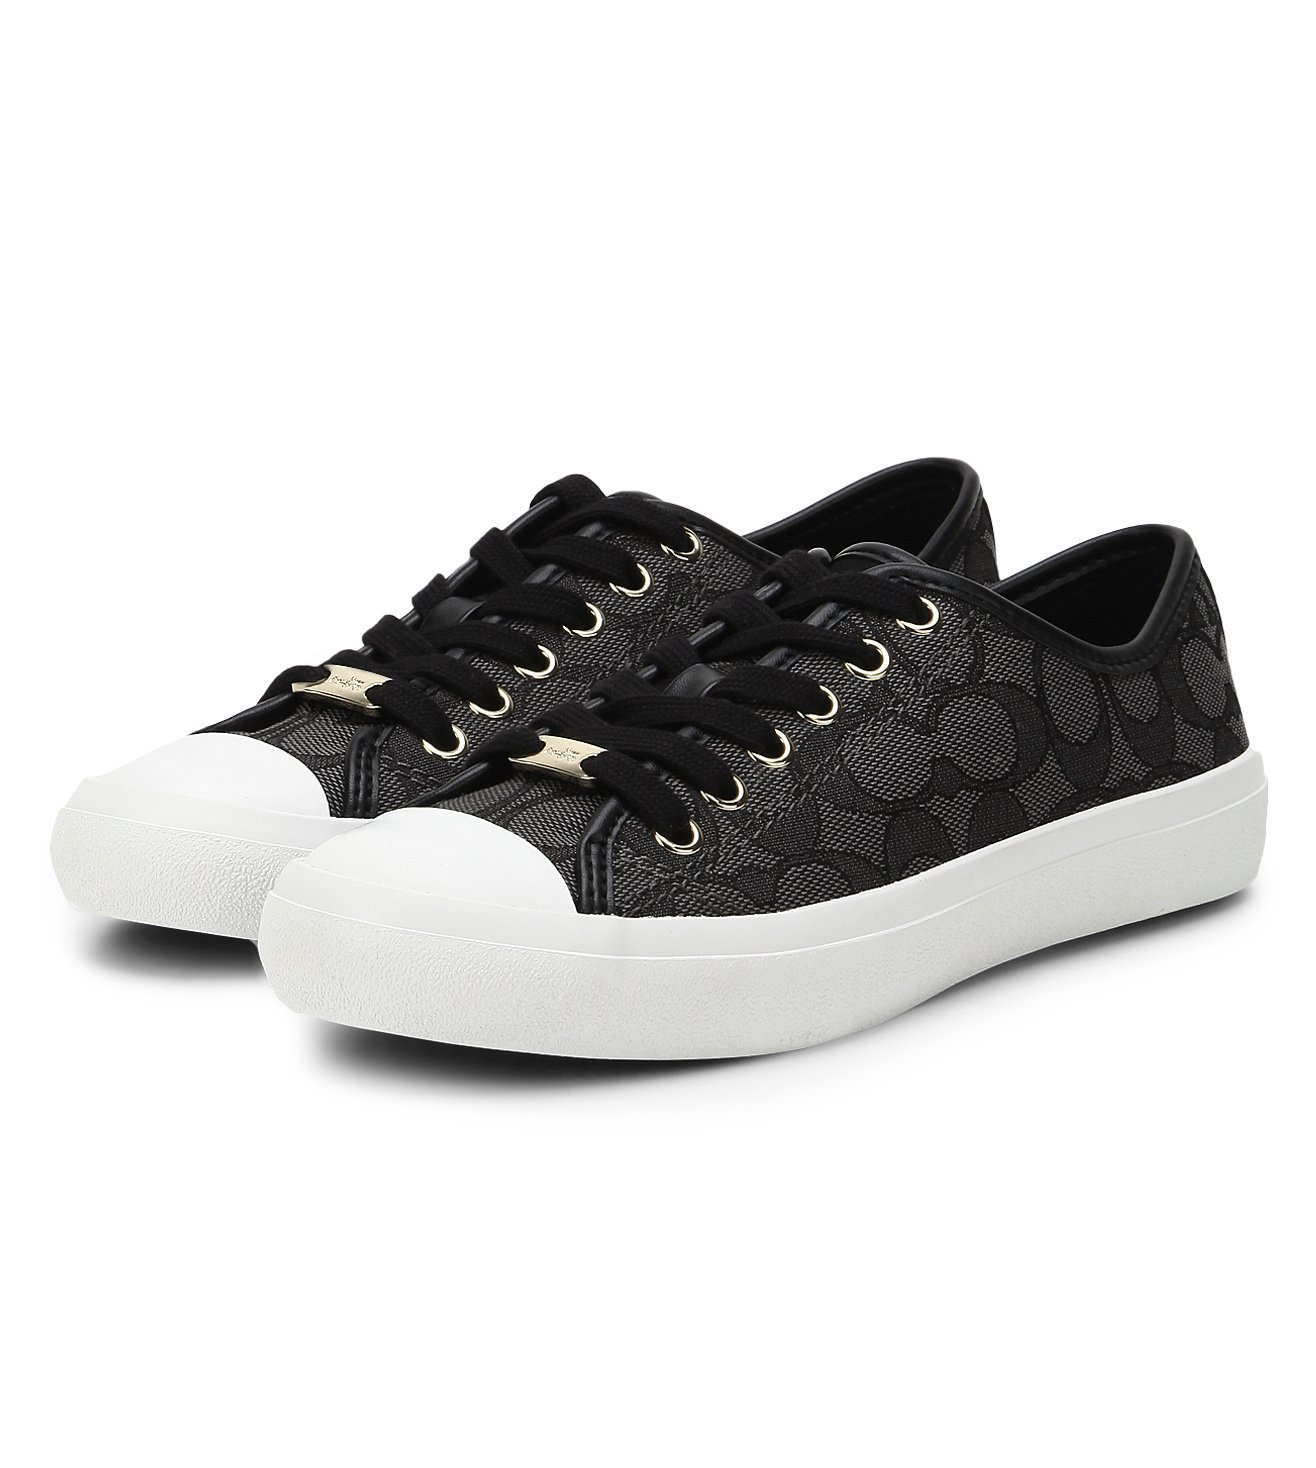 Buy Coach Empire Black Sneakers for